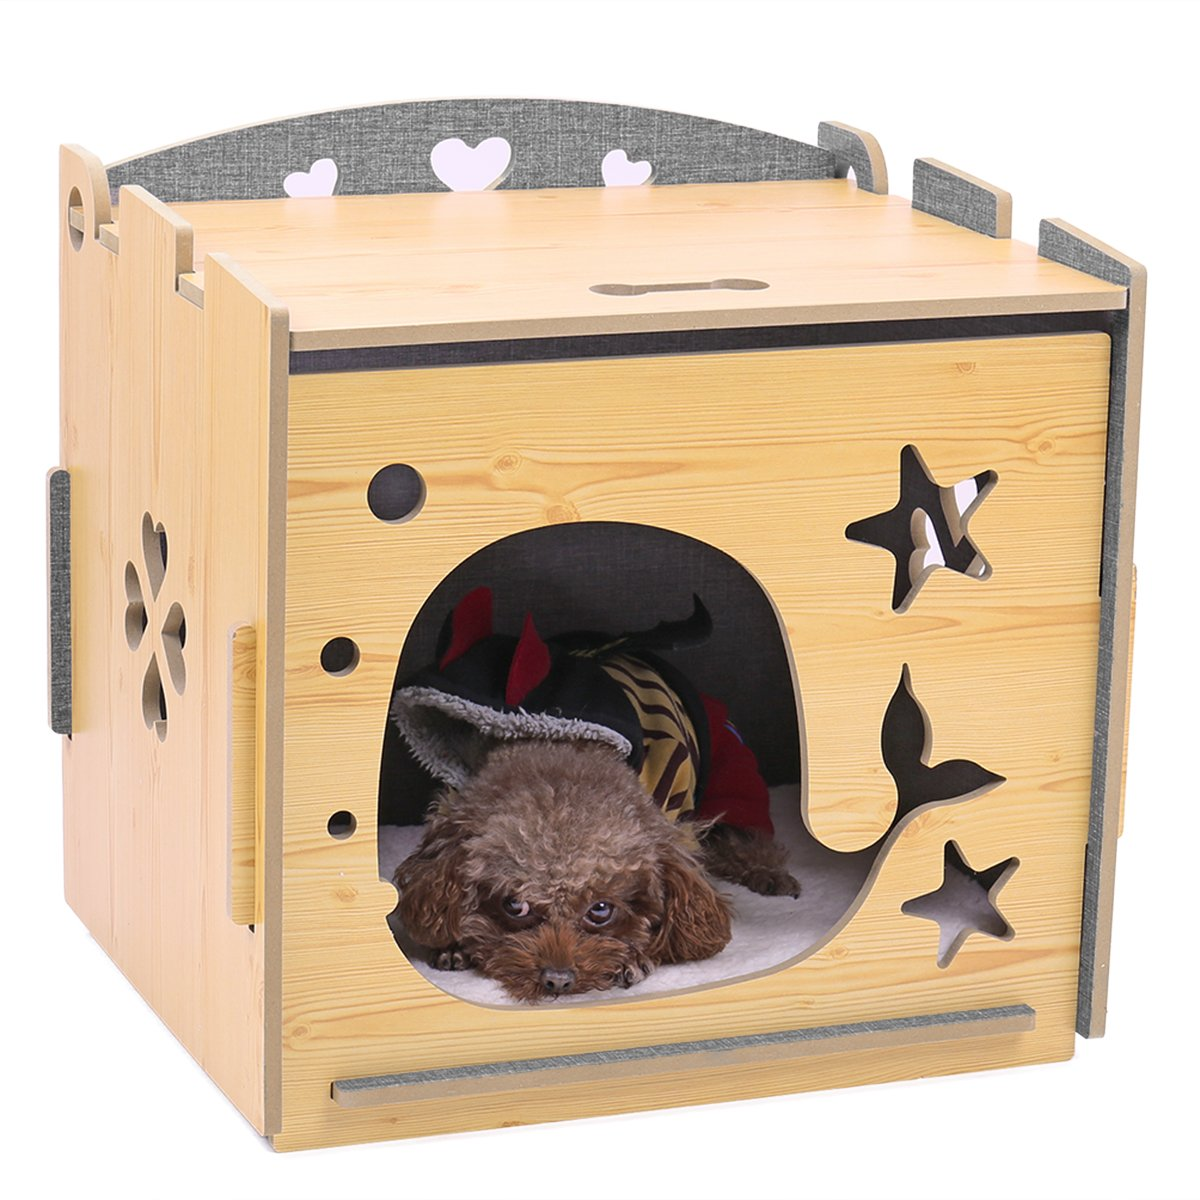 Speedy Pet Puppy Cat House, Wooden Kennel Cat Rabbits Kitten Condo Bed Pet Home for Small Animals 19.1'' L x 15.4'' W x 18.9'' H